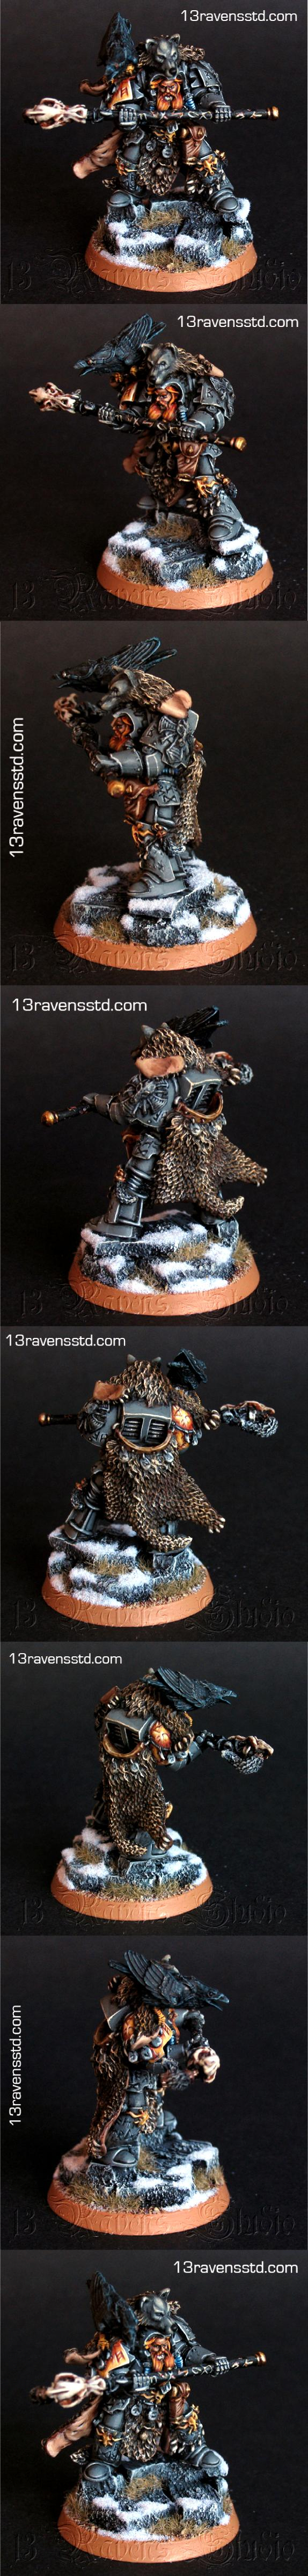 Librarian, Njal Stormcaller, Runic Priest, Scenery Base, Space Wolves, Warhammer 40,000